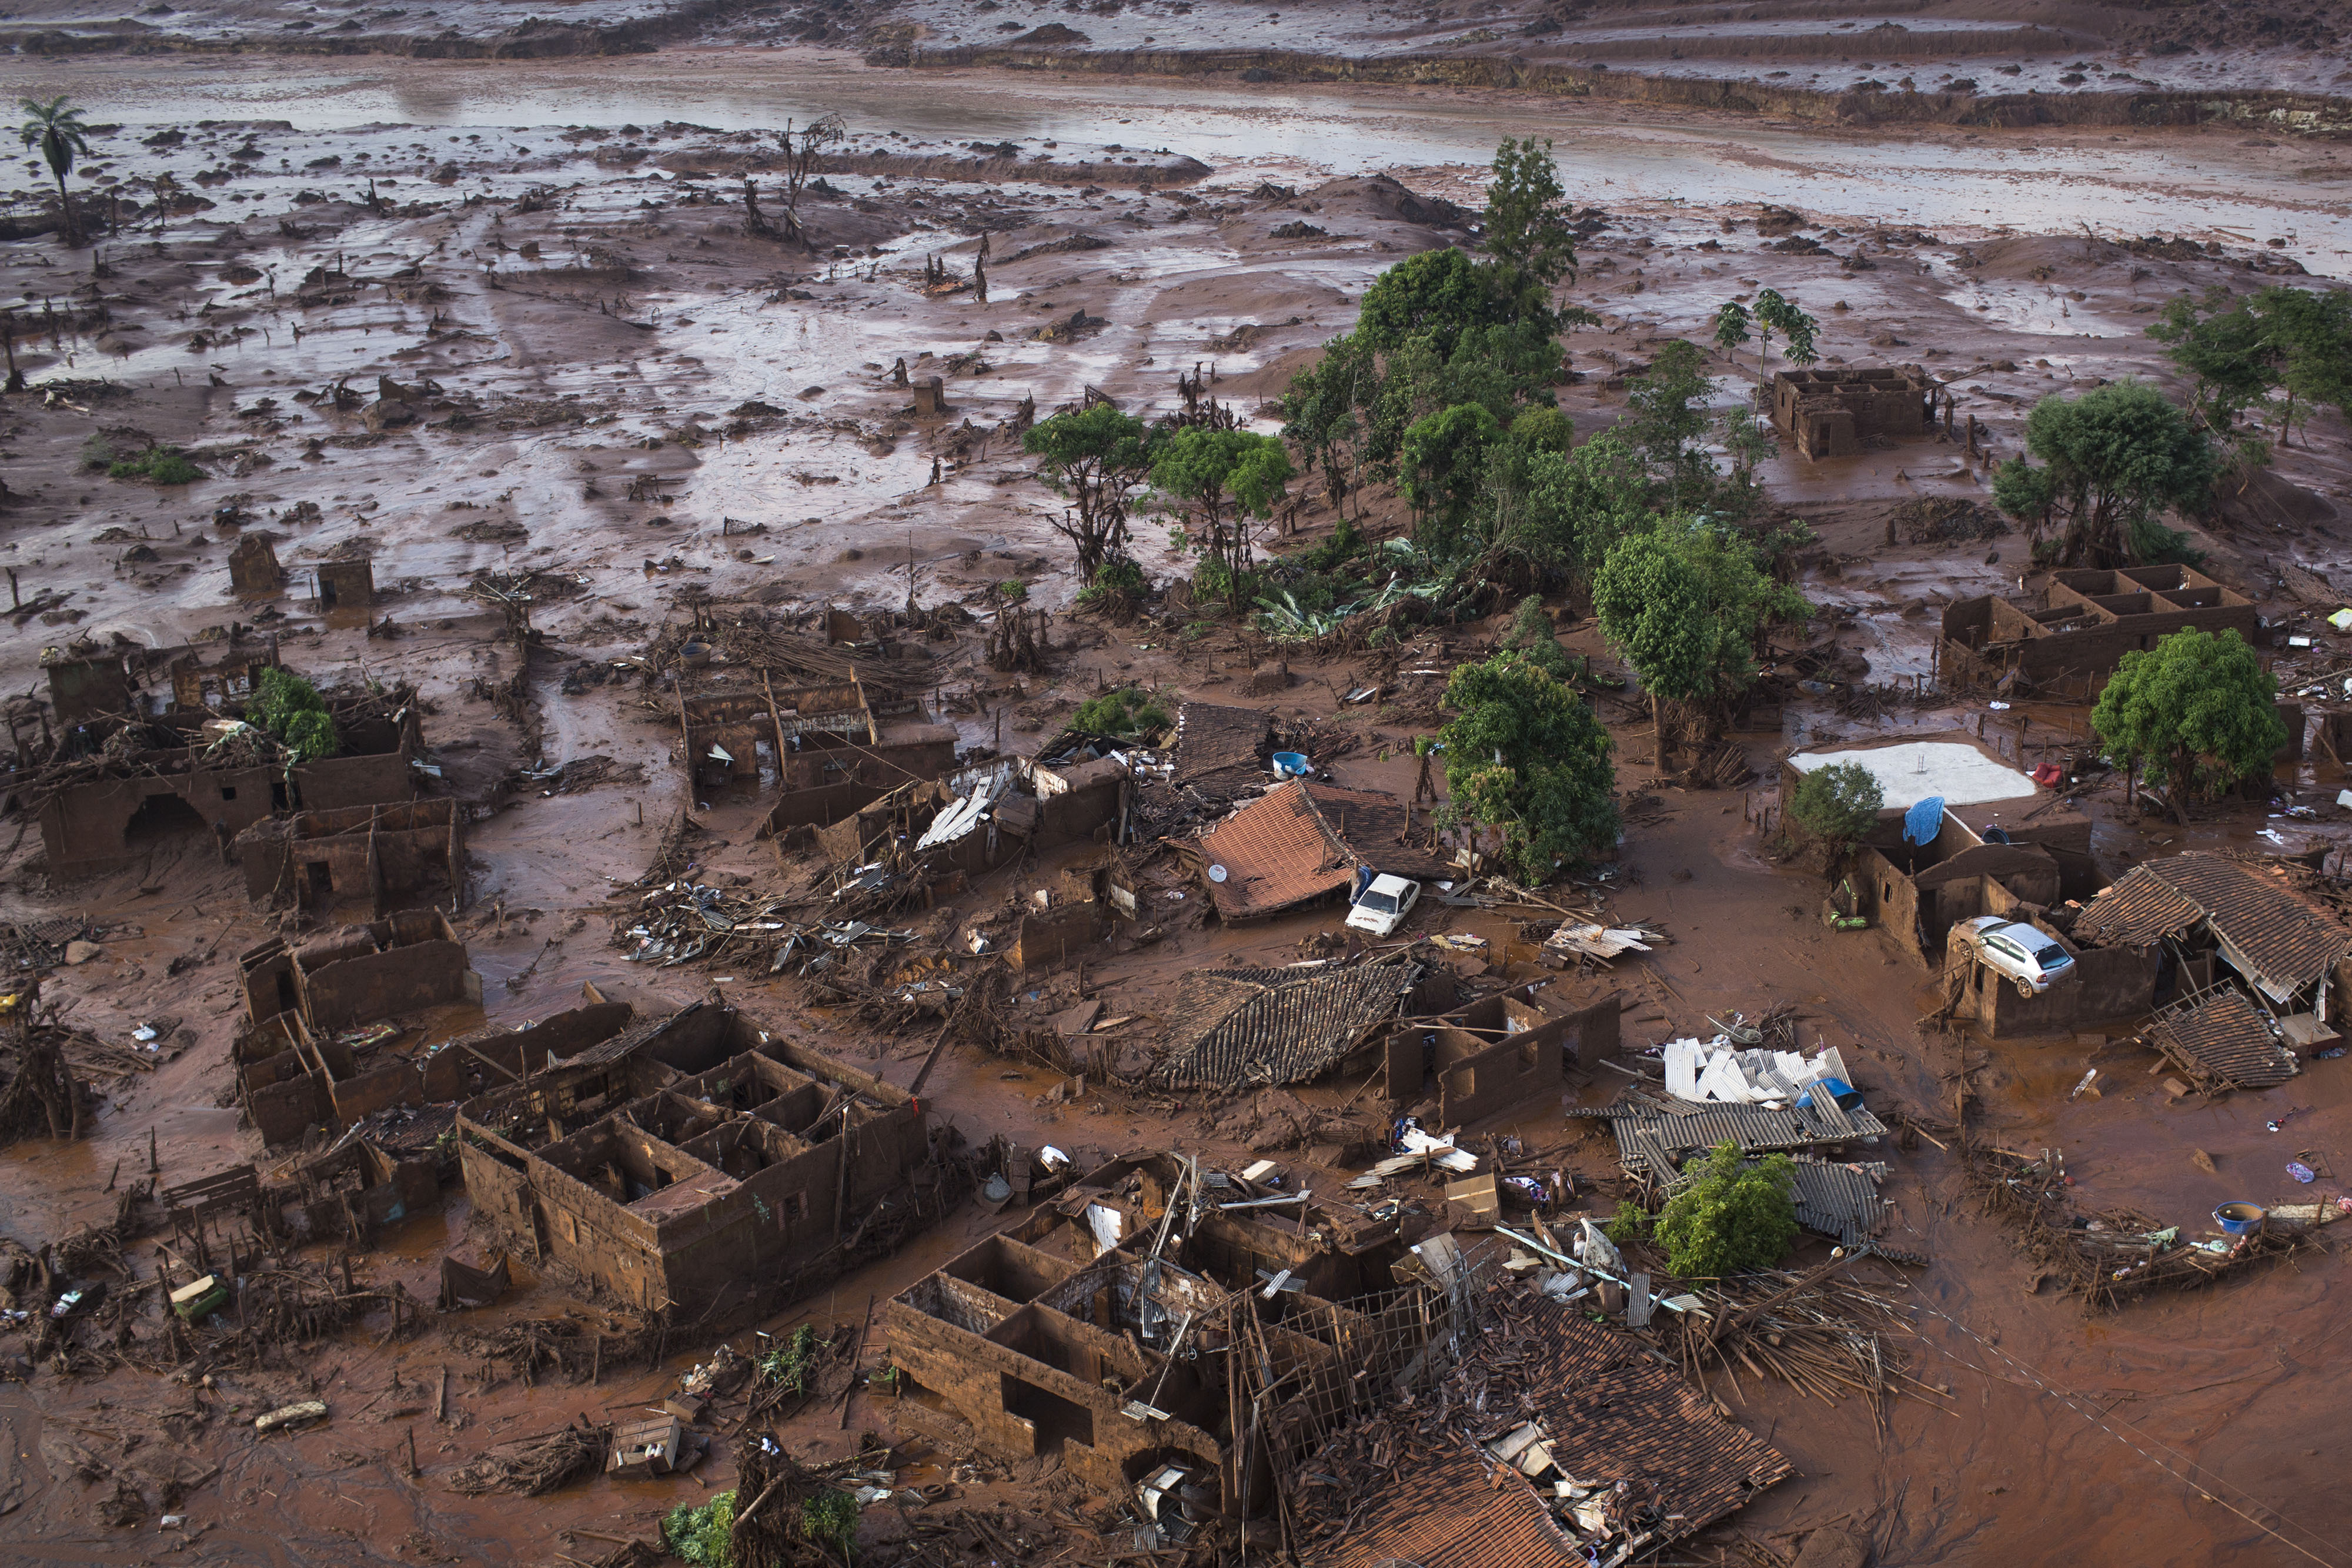 Homes lay in ruins after two dams burst, flooding the small town of Bento Rodrigues in Minas Gerais state, Brazil in 2015.